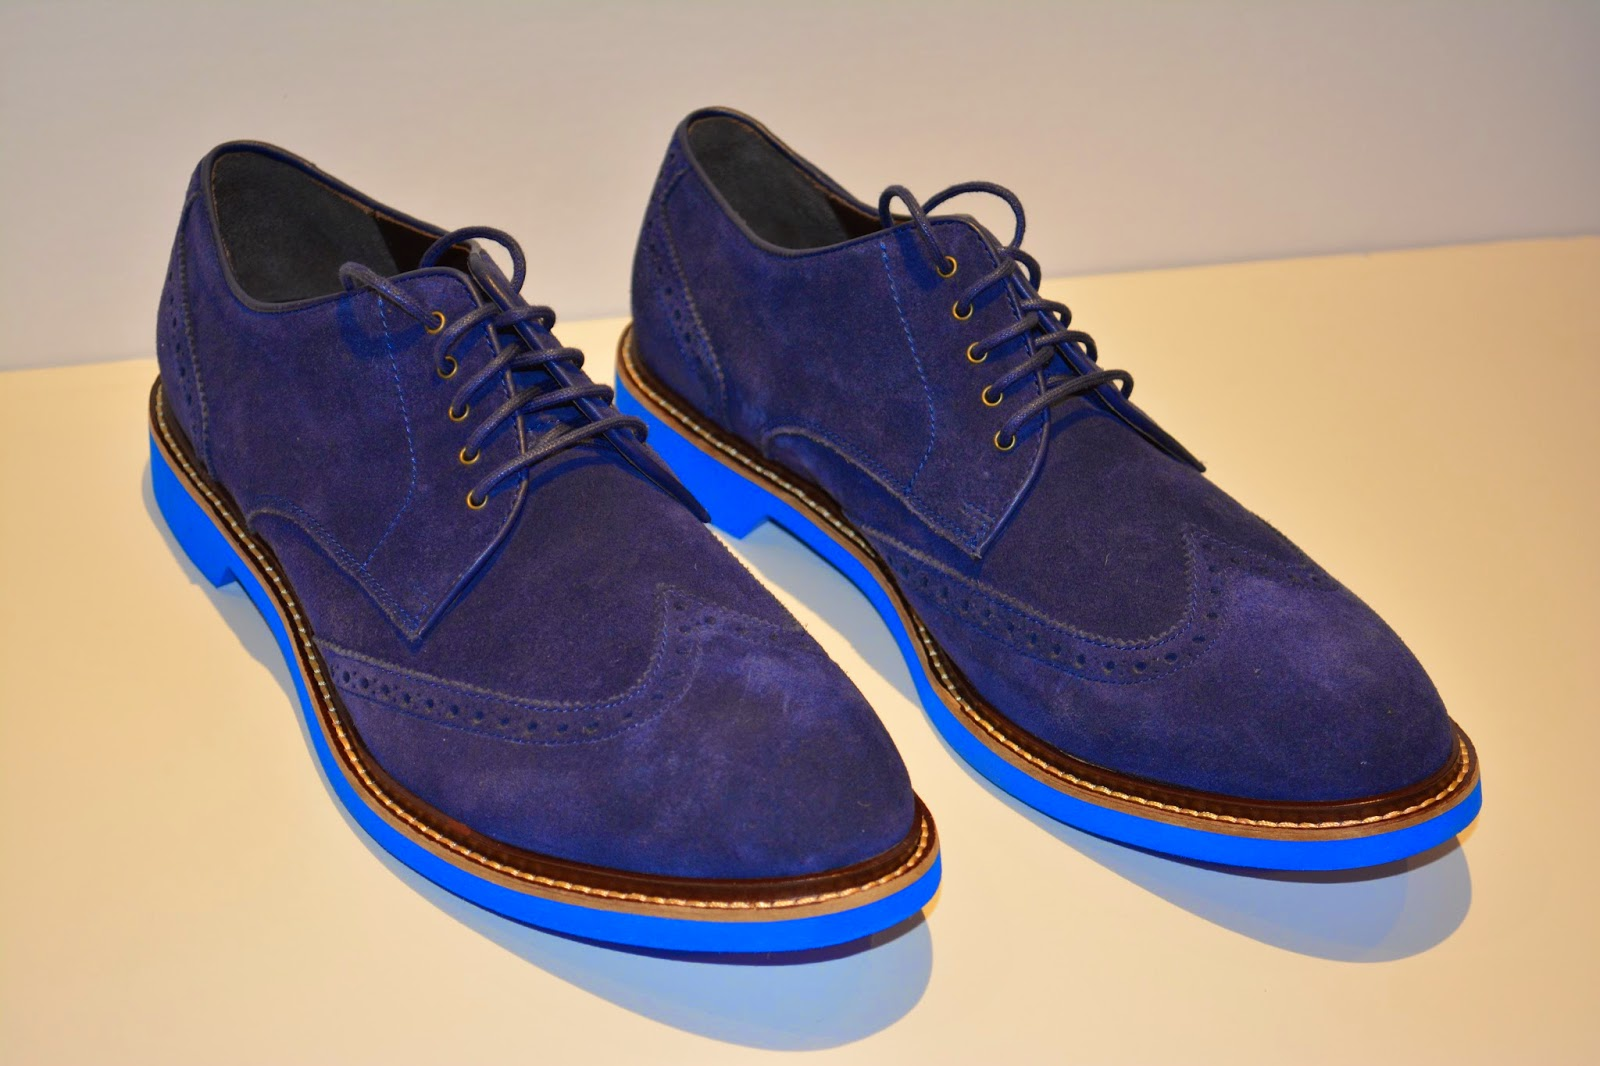 Shop for and buy blue suede shoes online at Macy's. Find blue suede shoes at Macy's.